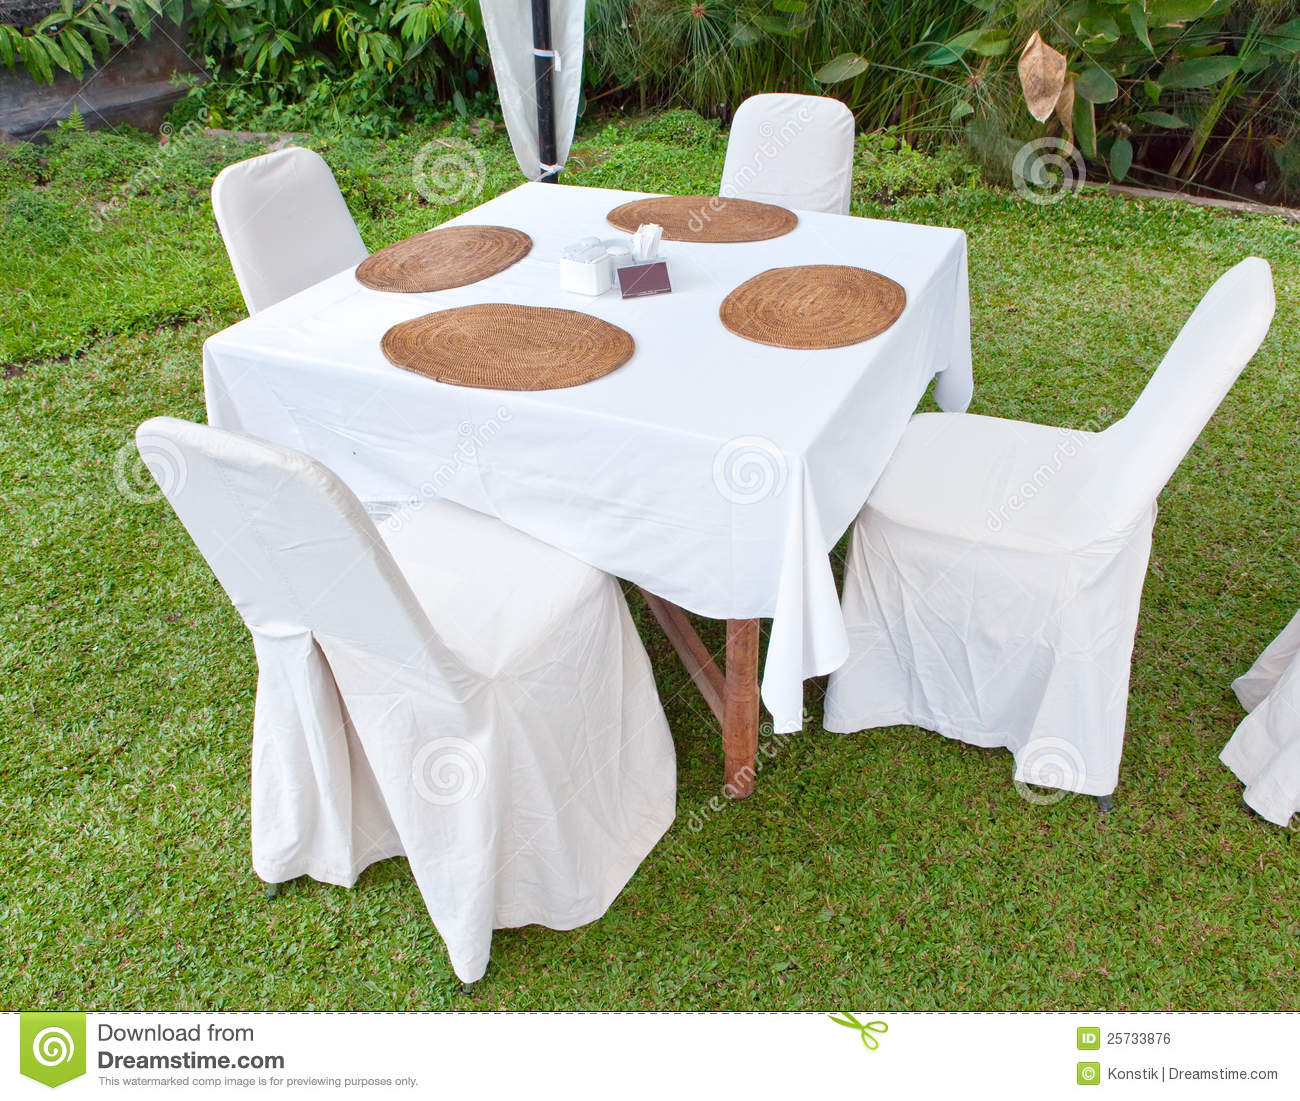 Table with a white cloth and 4 chairs